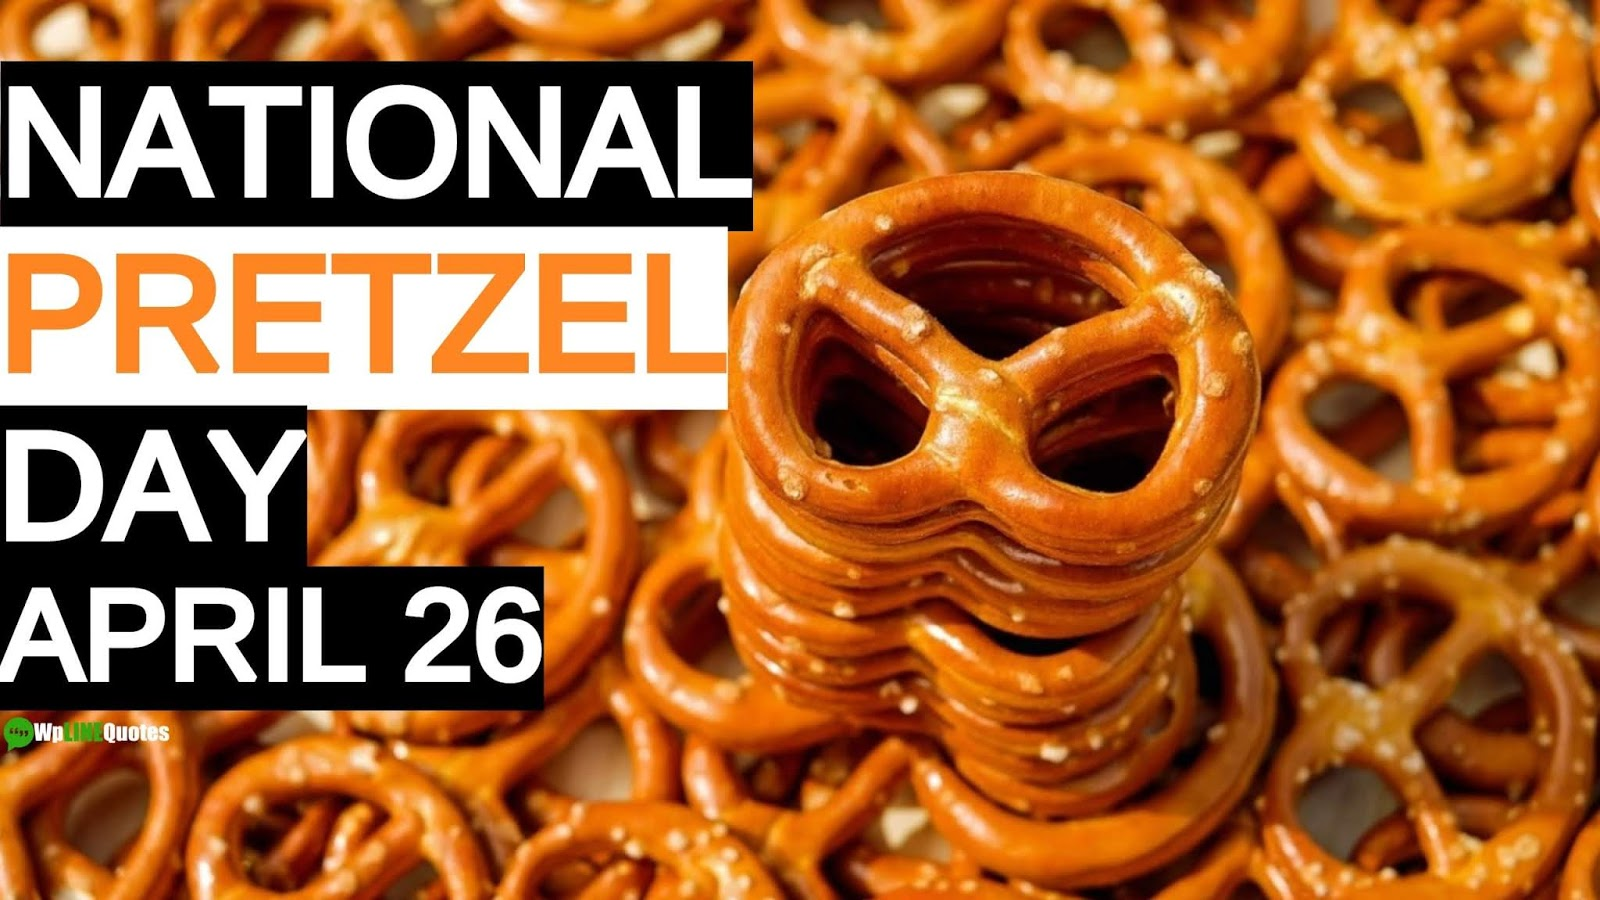 National Pretzel Day Quotes, History, Facts, Images, Pictures